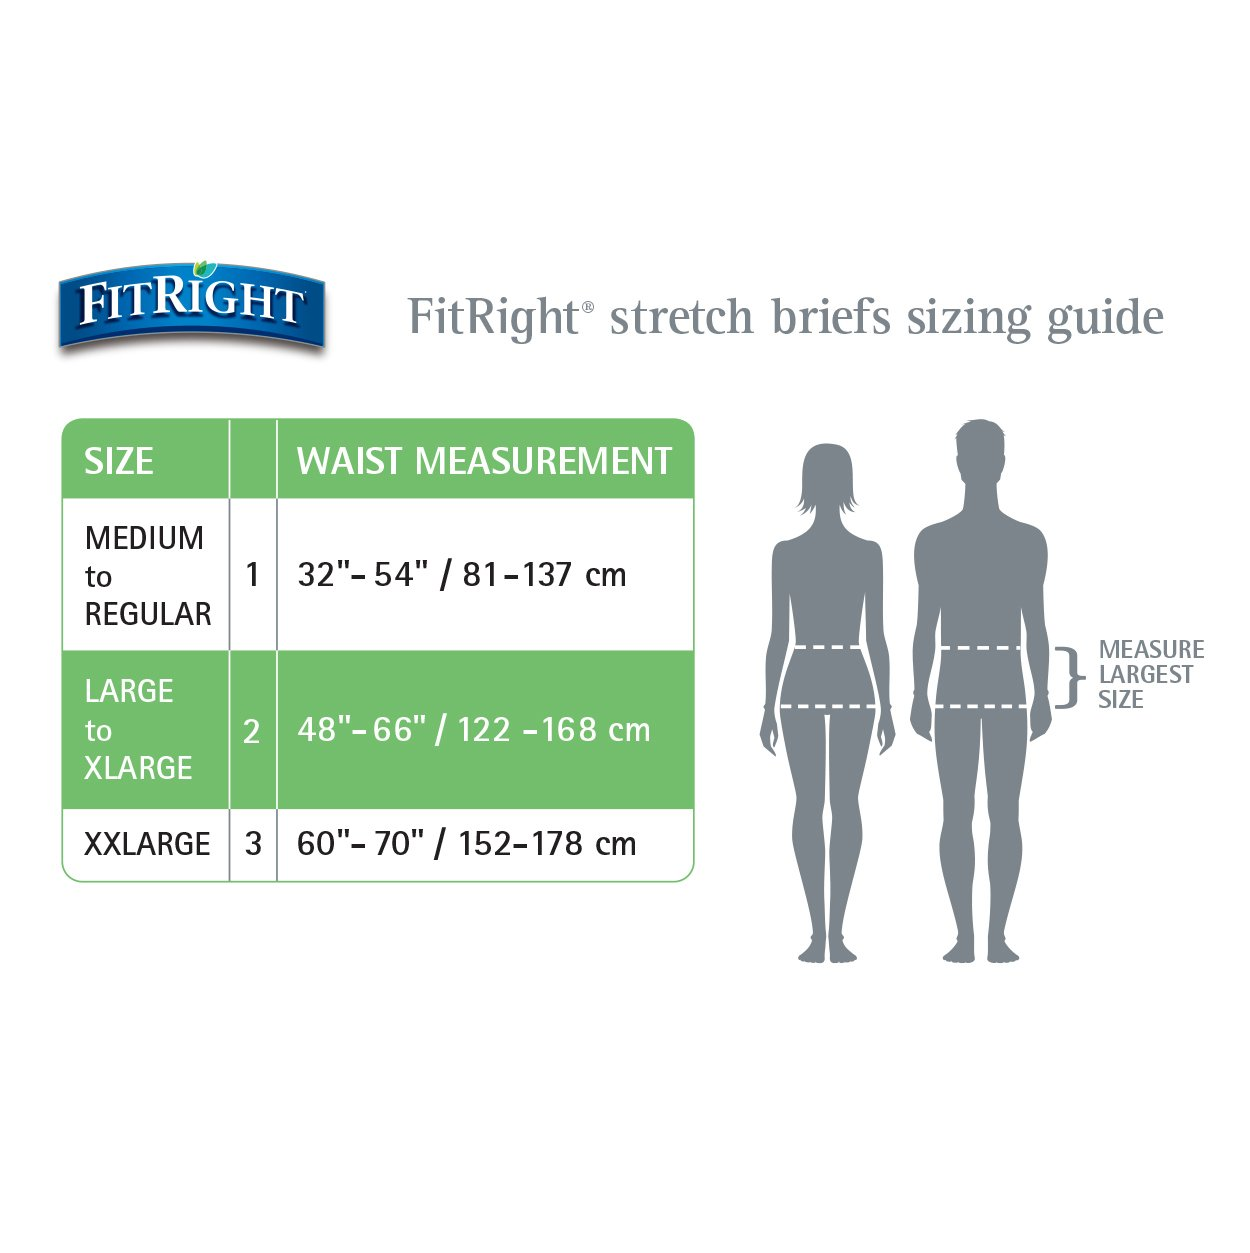 Amazon.com: FitRight Stretch Adult Briefs with Tabs, Heavy Absorbency, Medium, 32